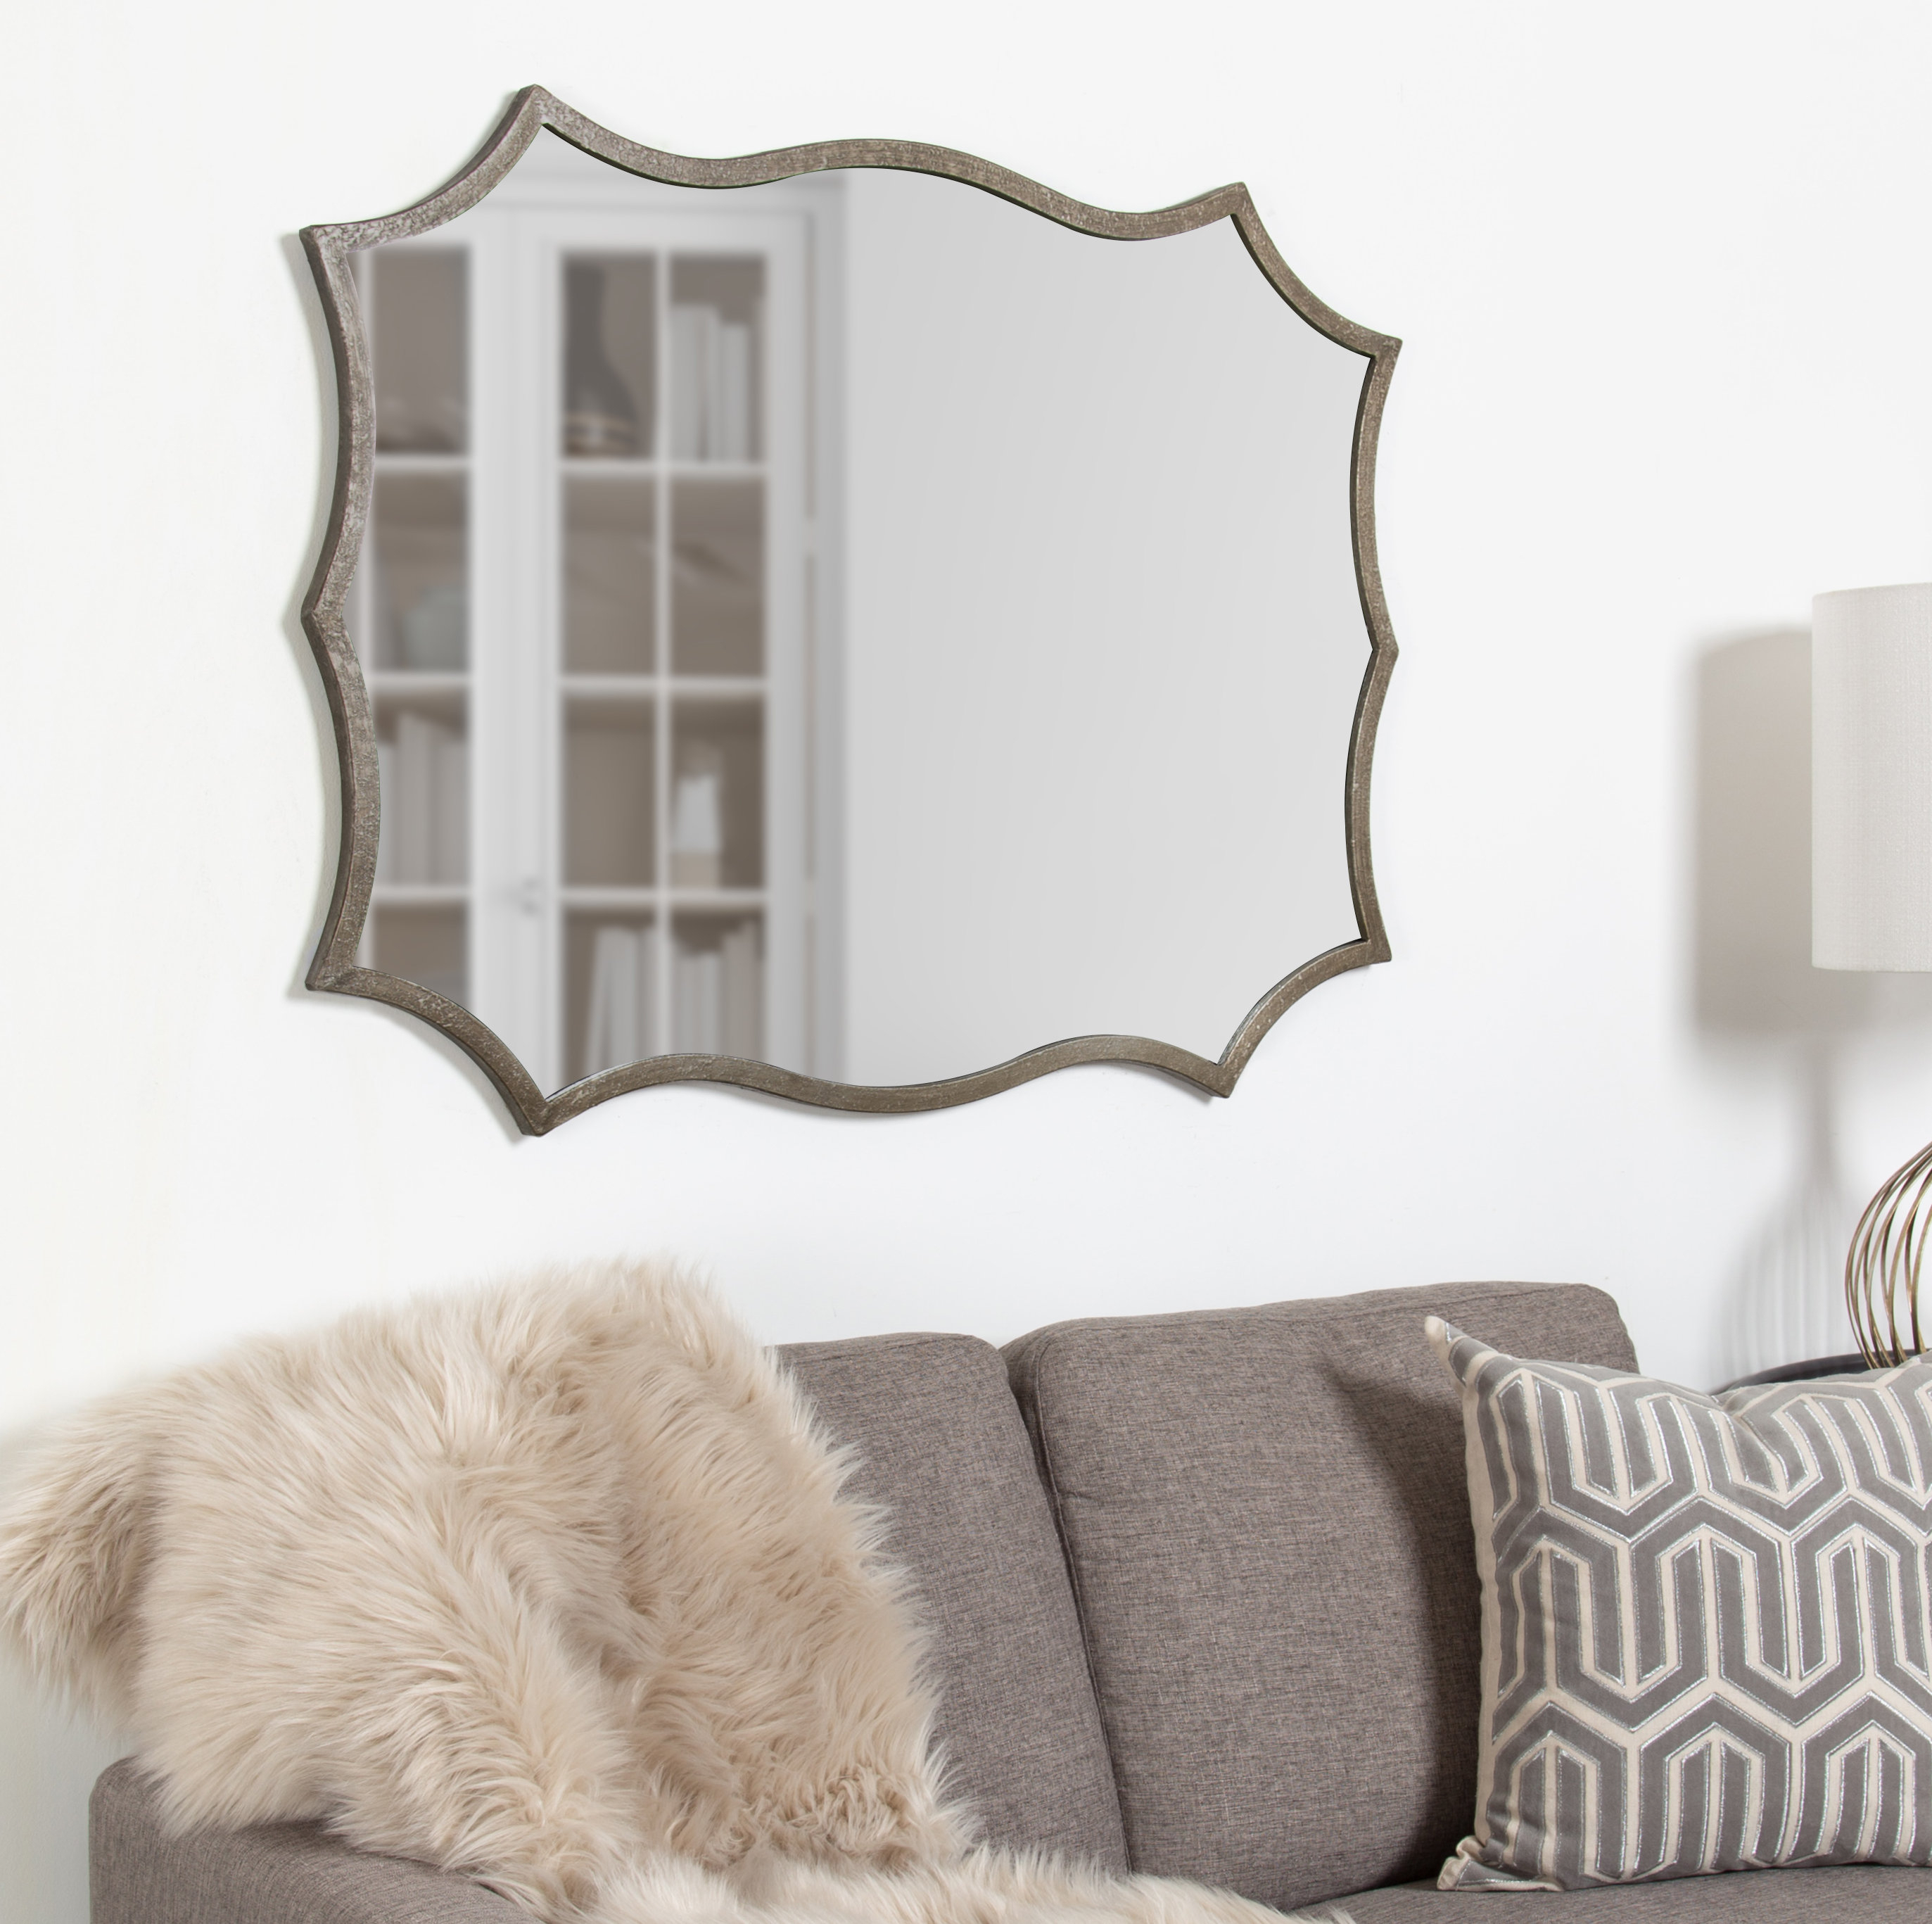 Delvale Scallop Accent Wall Mirror Within Guidinha Modern & Contemporary Accent Mirrors (View 13 of 30)